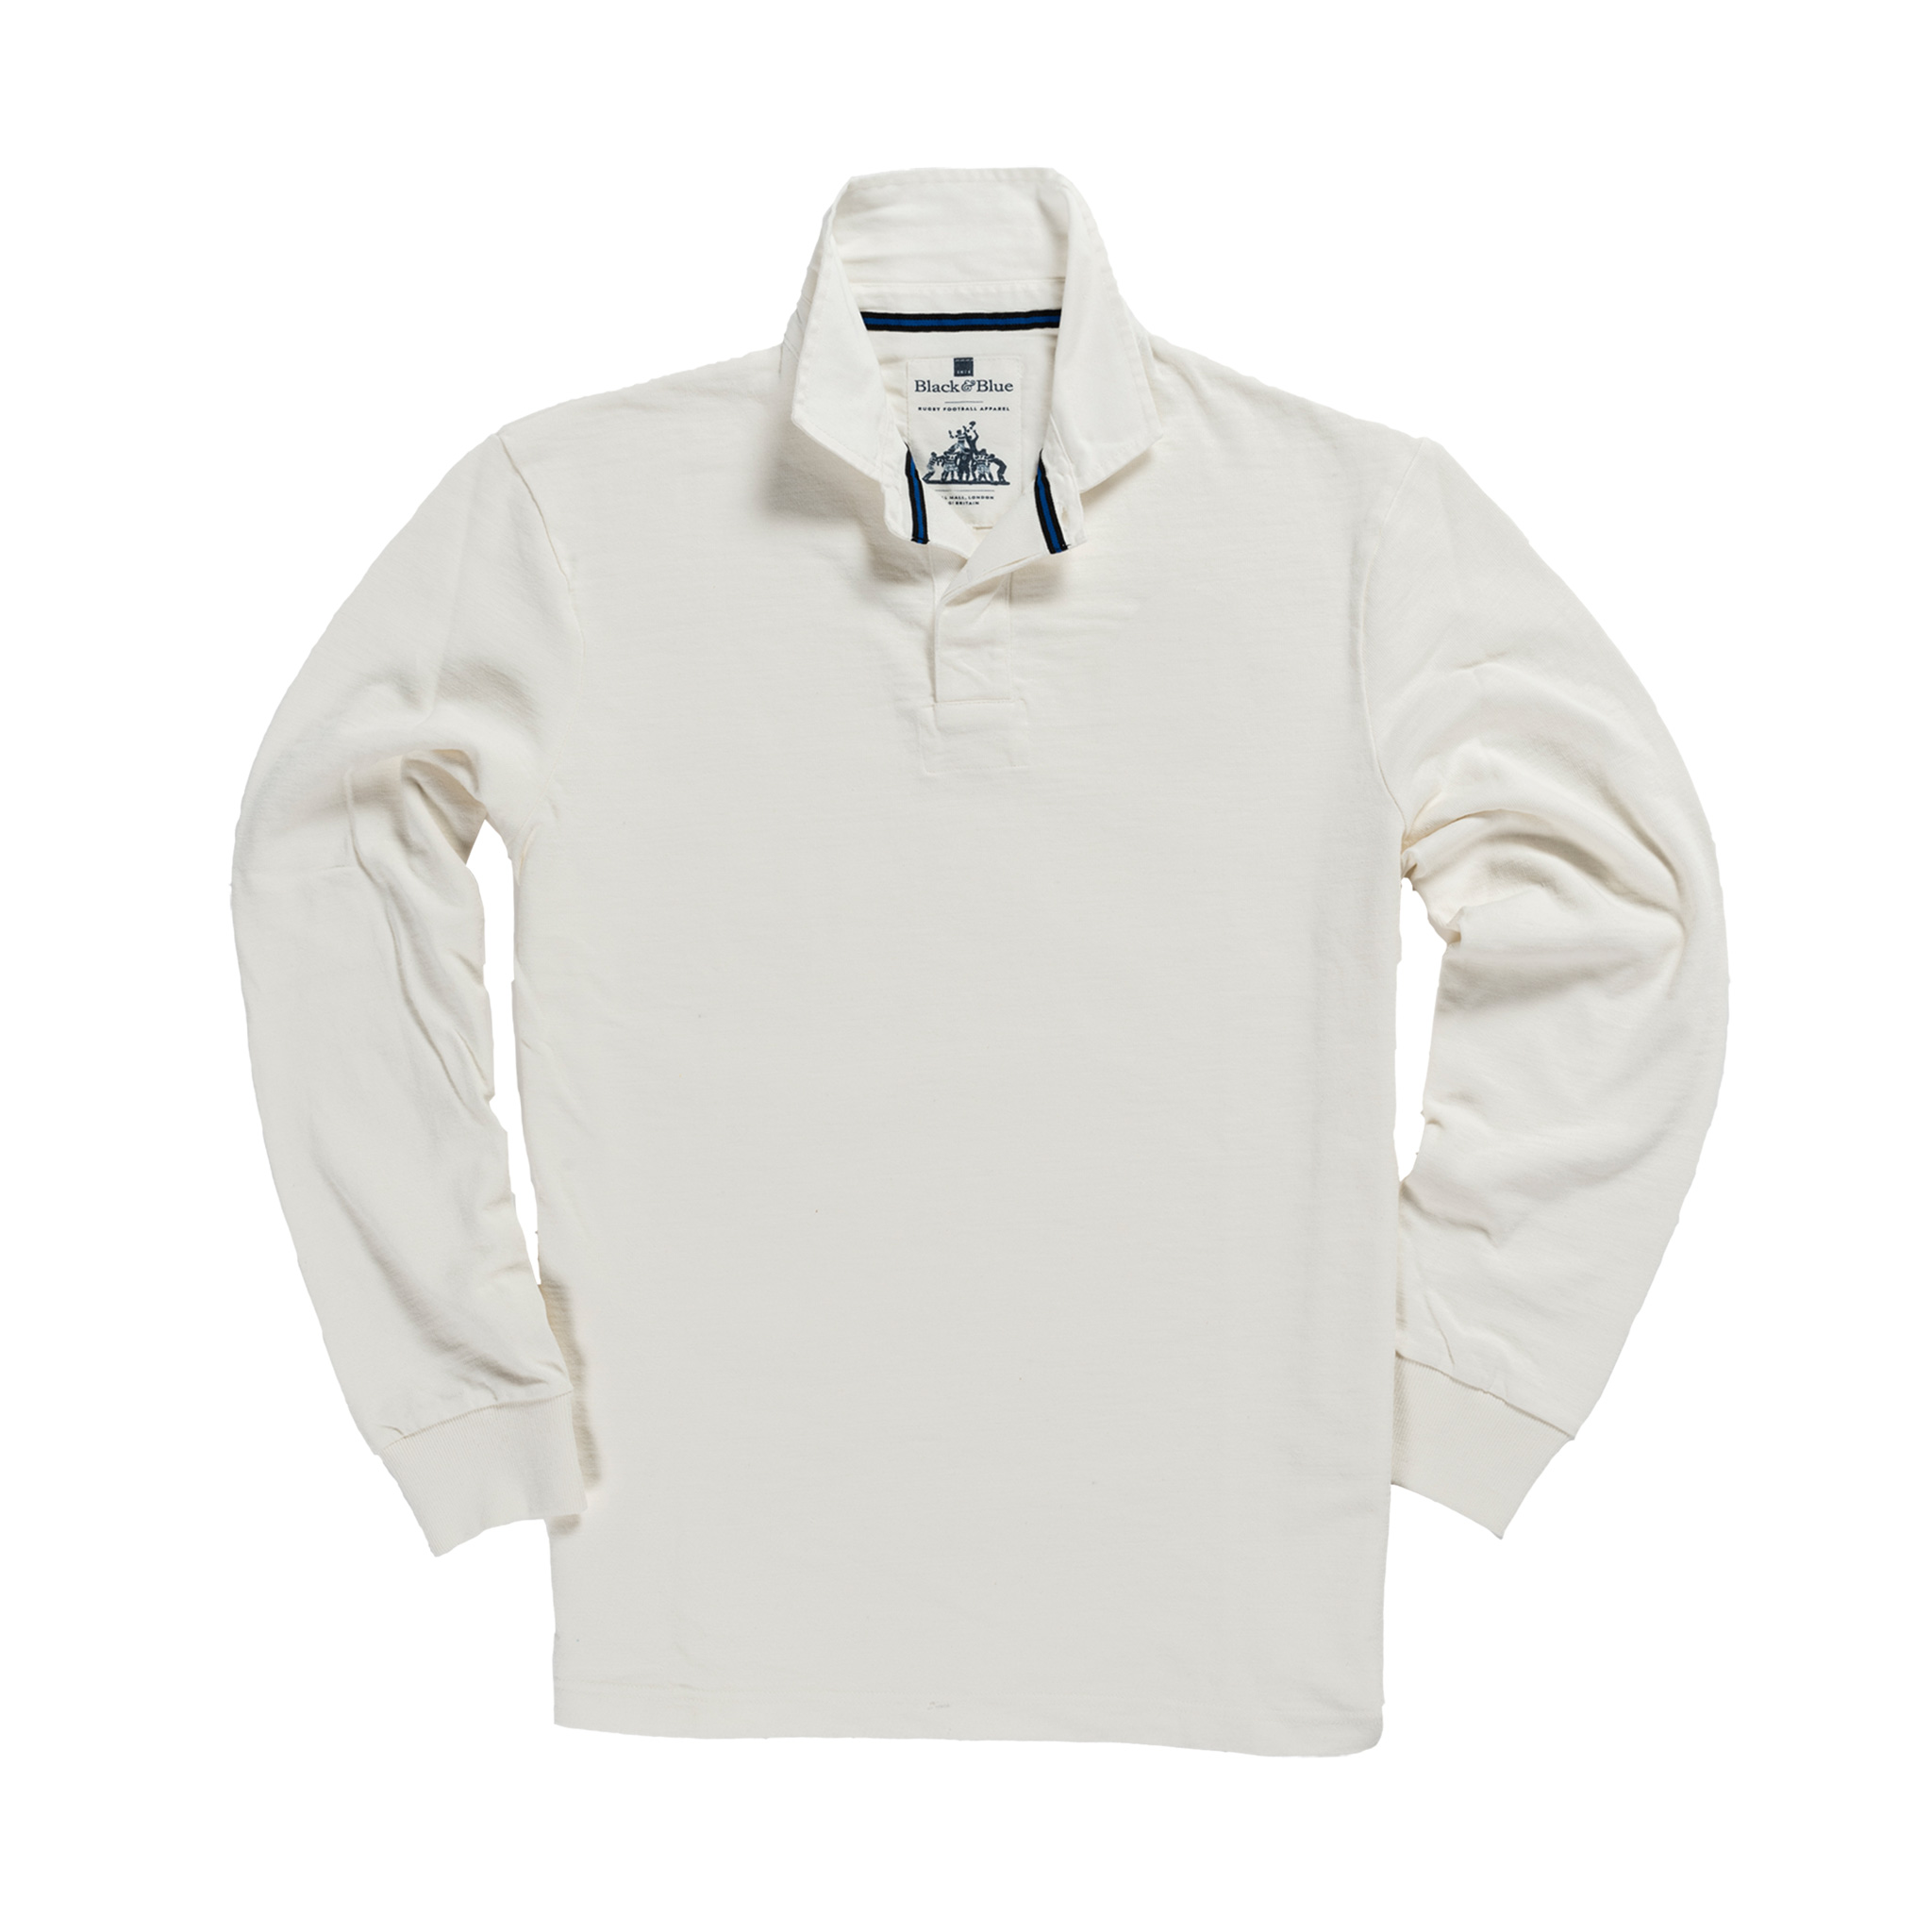 Classic White 1871 Vintage Rugby Shirt